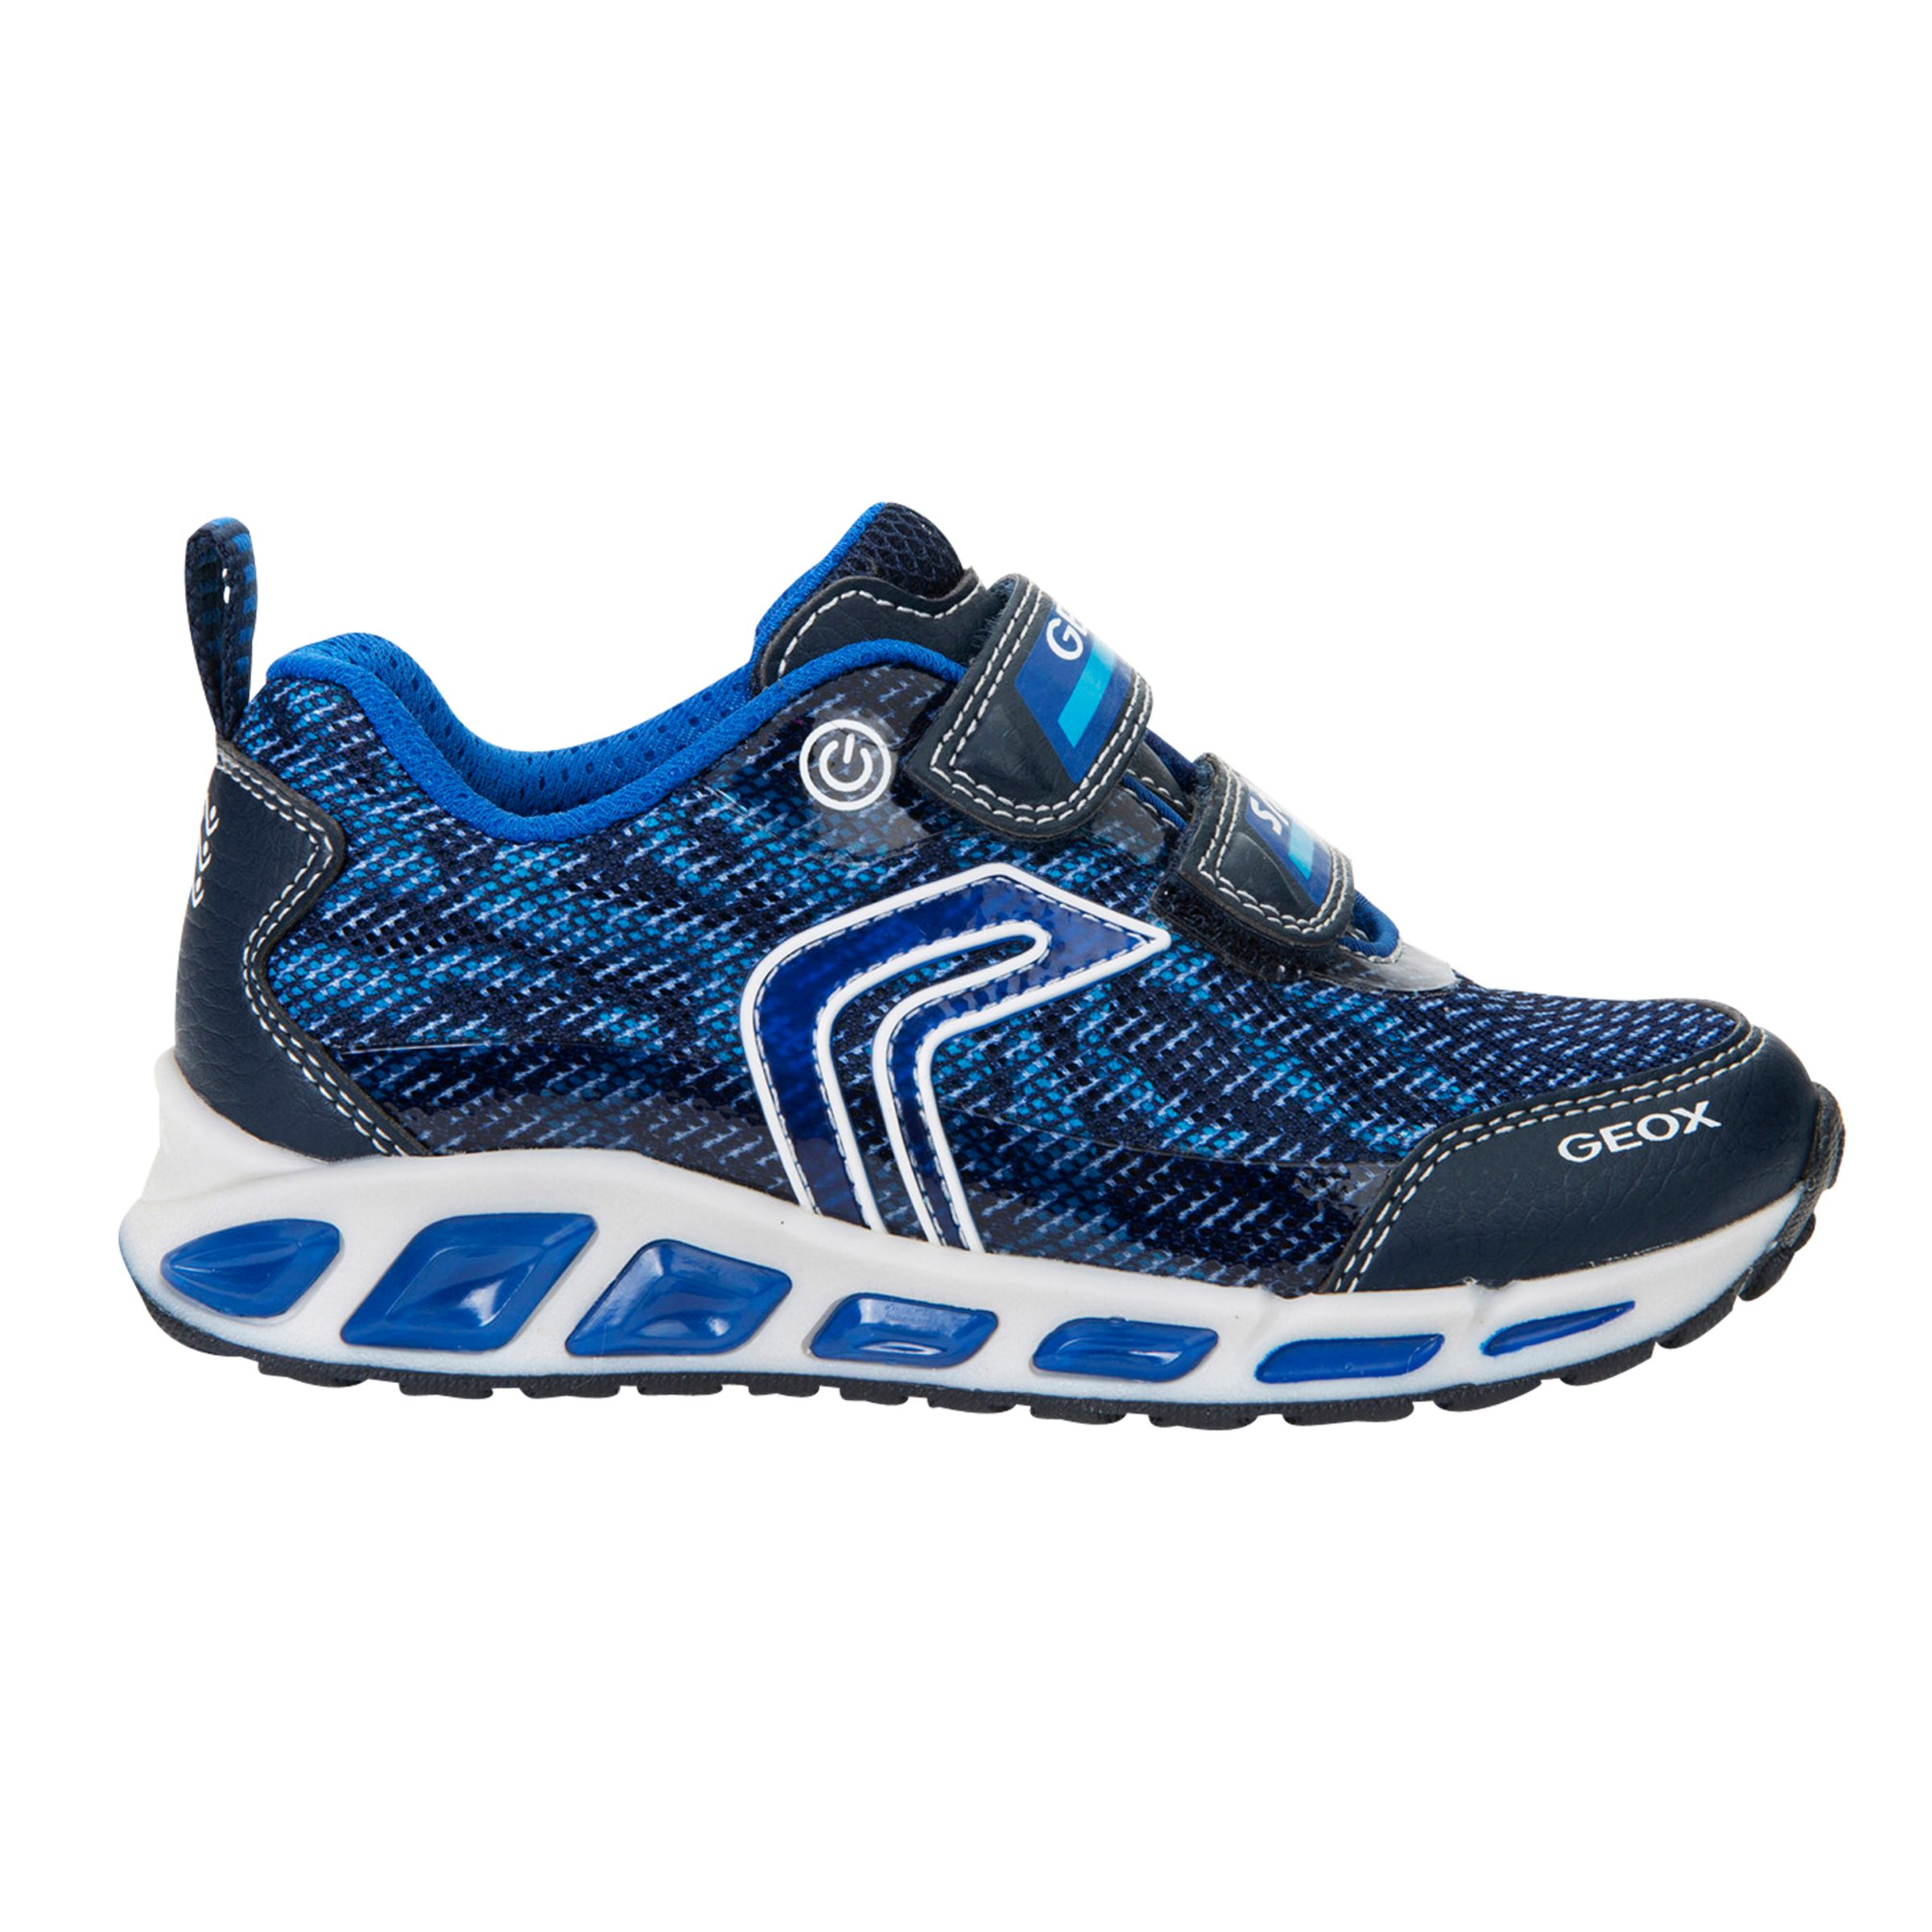 Geox Children's Shuttle Light Up Double Riptape Trainers